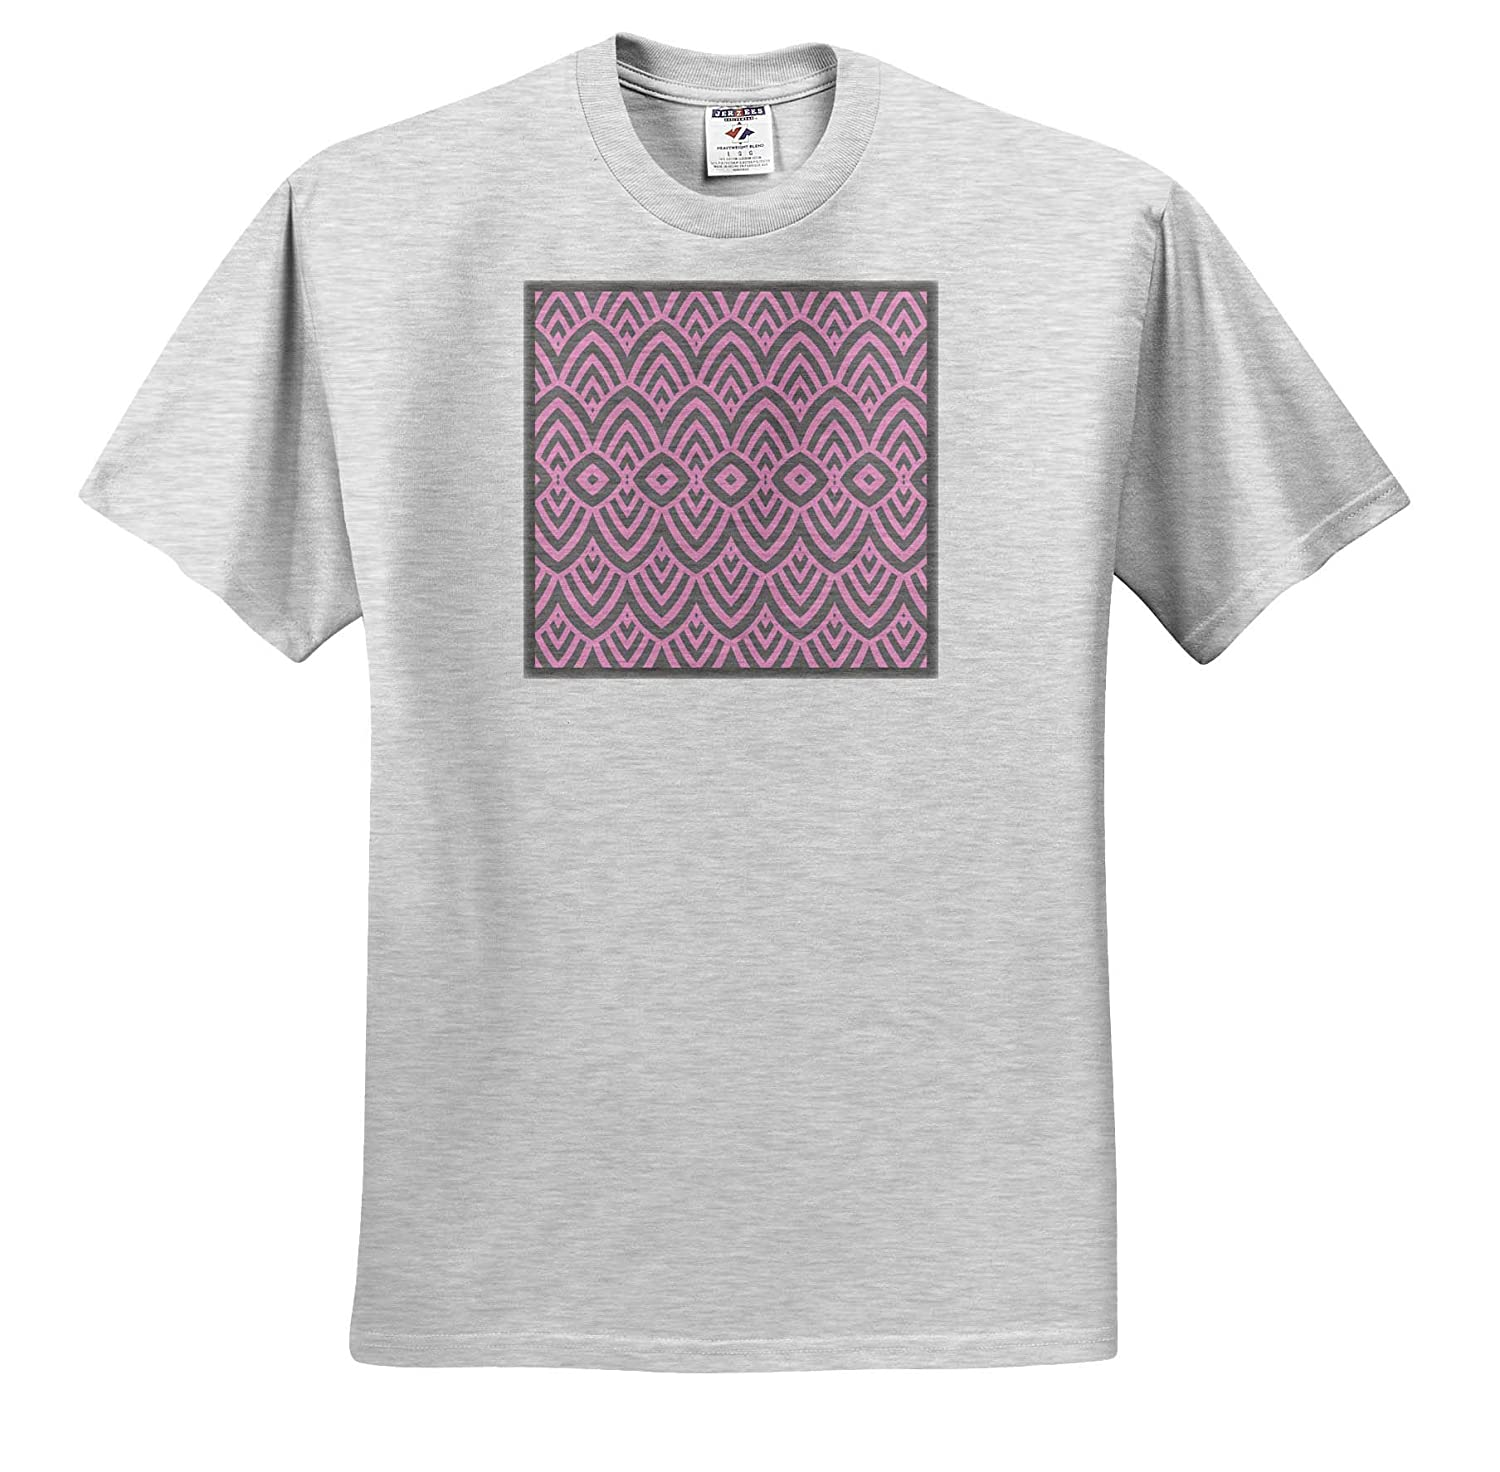 Allover Pattern in Pastel Shades of Pink and Grey T-Shirts 3dRose Andrea Haase Allover Pattern